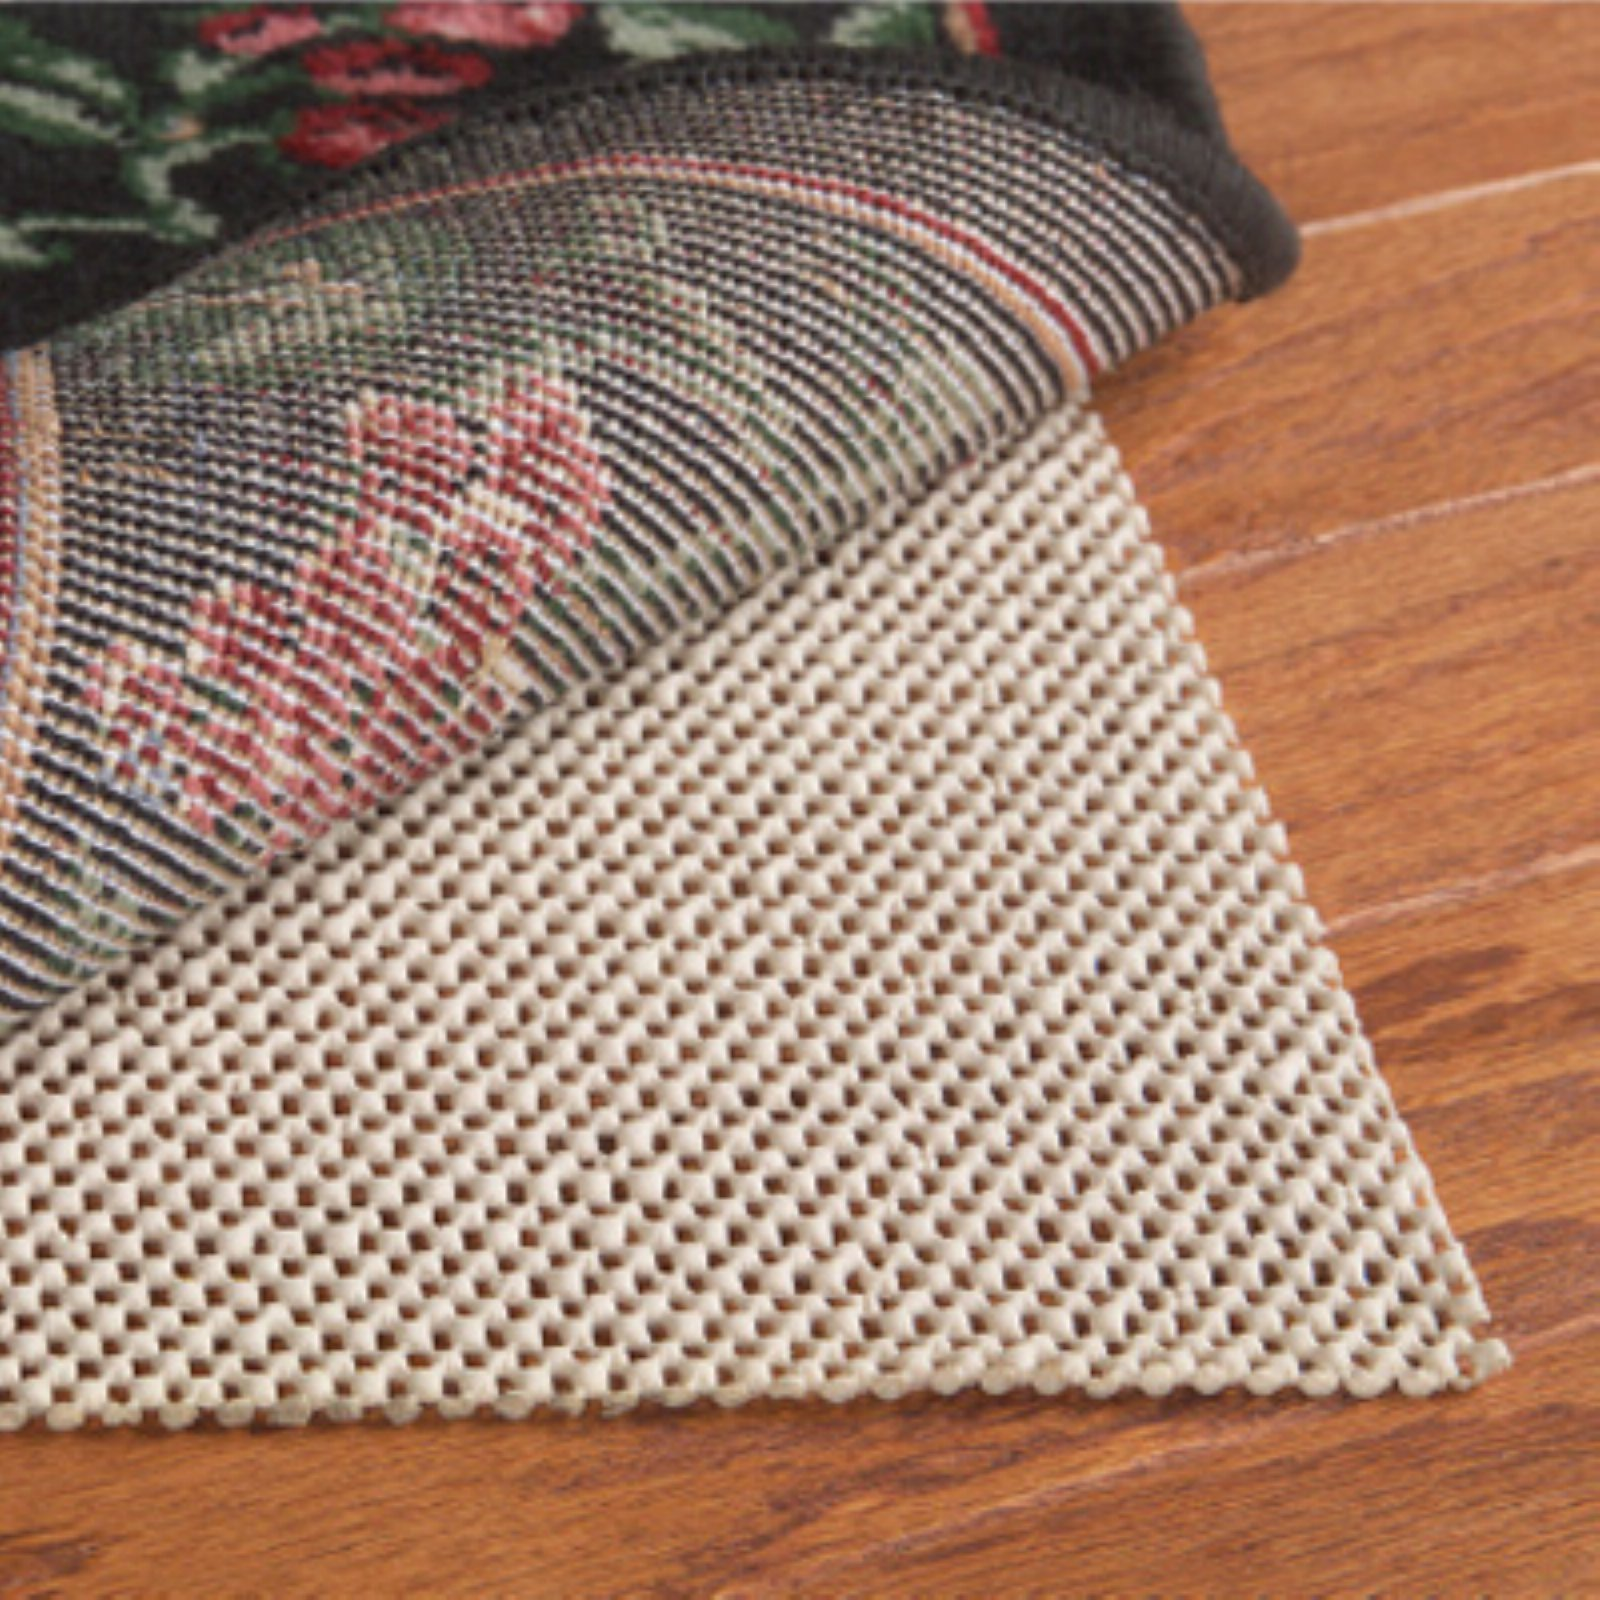 Click here to buy Eco Grip Rug Saver Pad by Overstock.